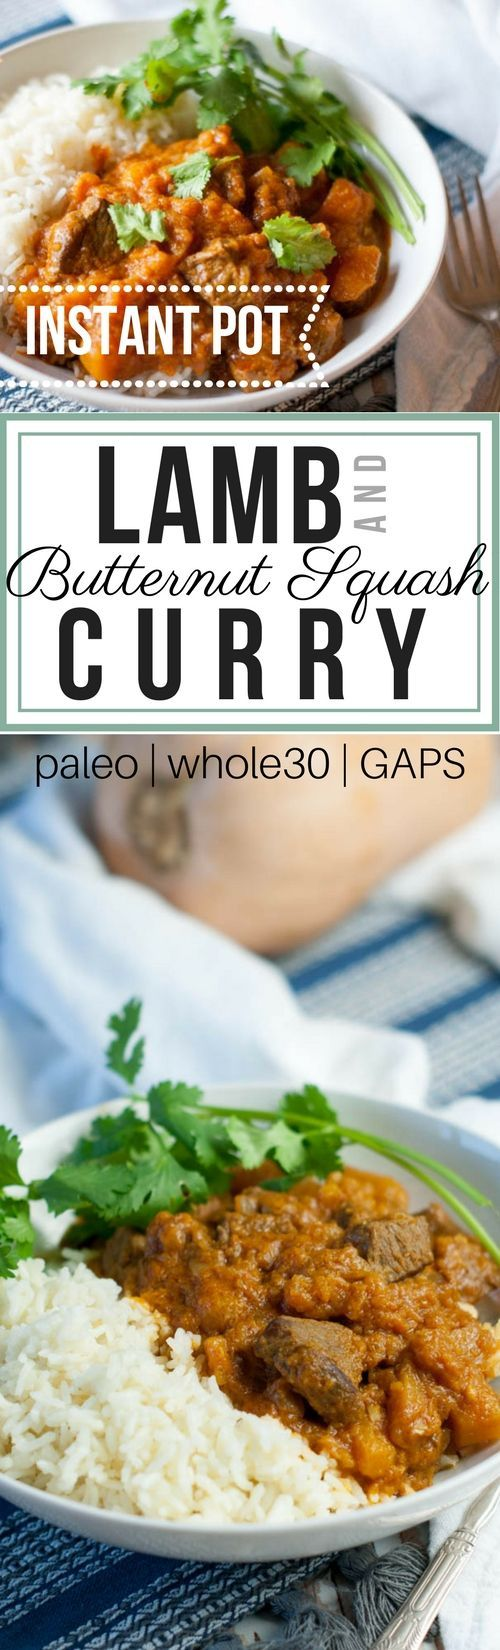 Lamb and Butternut Squash Curry made in the electric pressure cooker (Instant Pot) starts with tender grass-fed lamb, diced butternut squash, creamy coconut milk, and loads of curry flavor. Naturally #paleo, #whole30, and #GAPS for optimal nutrition. #instantpot #cleaneating via @preparenourish